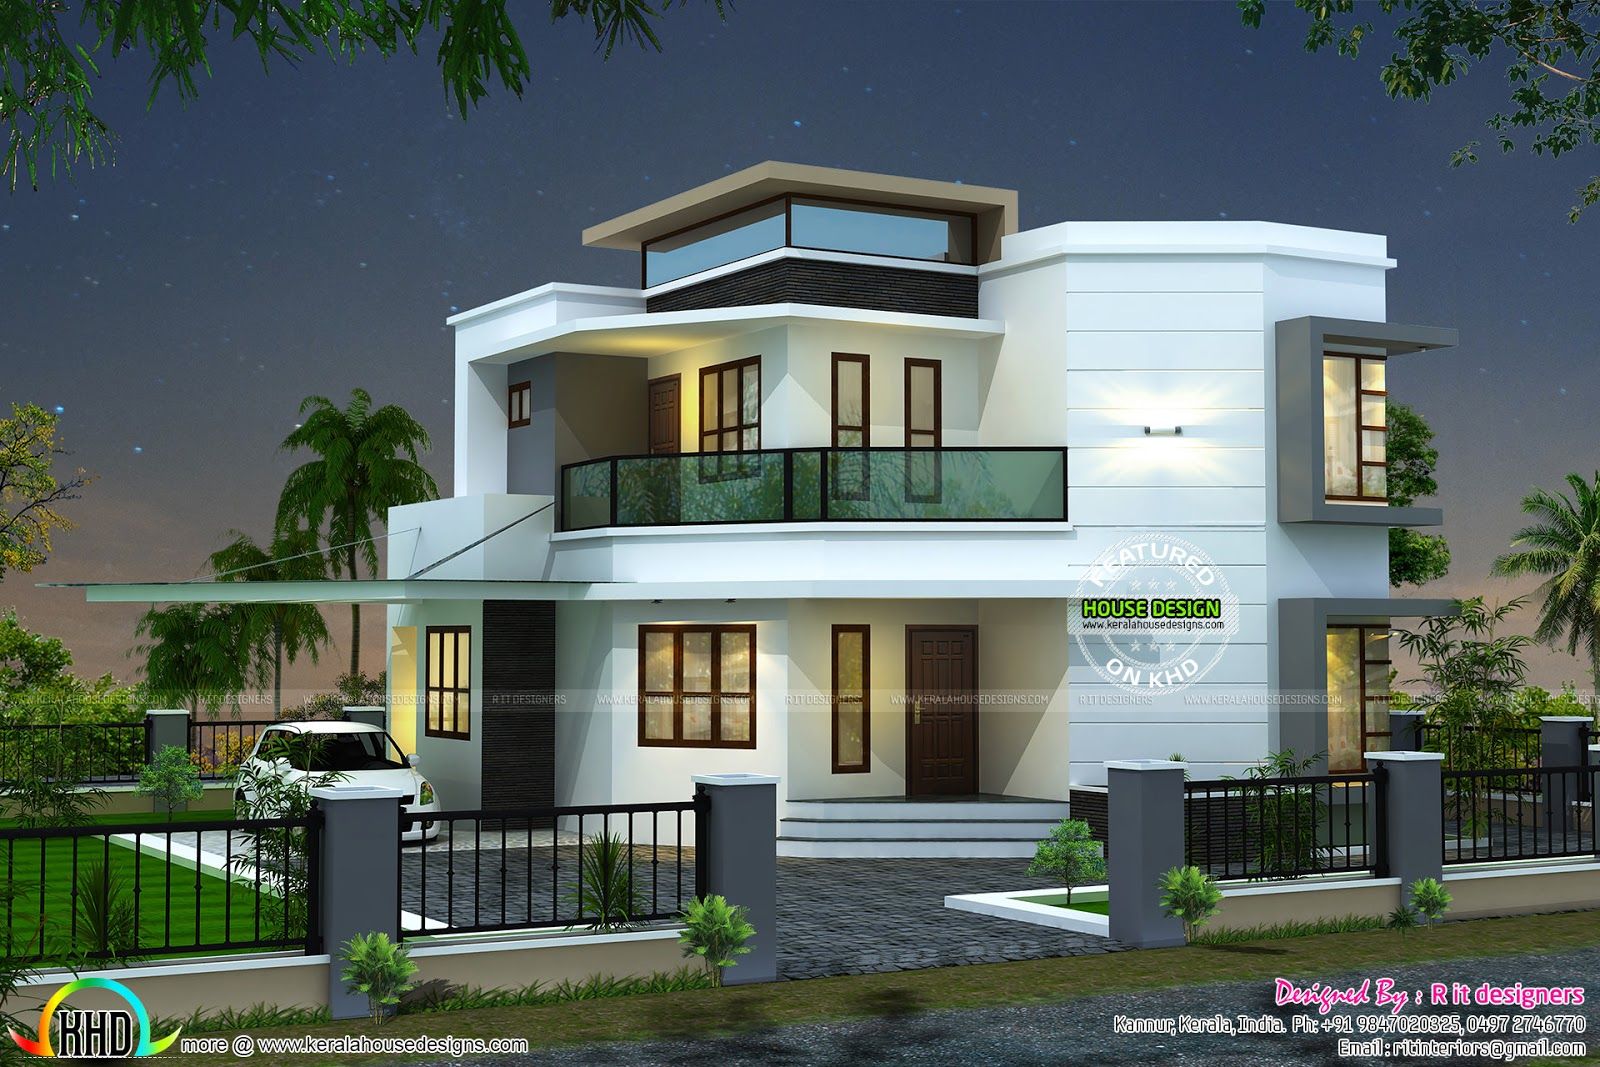 1838 sq ft cute modern house kerala home design and floor plans - Latest design modern houses ...